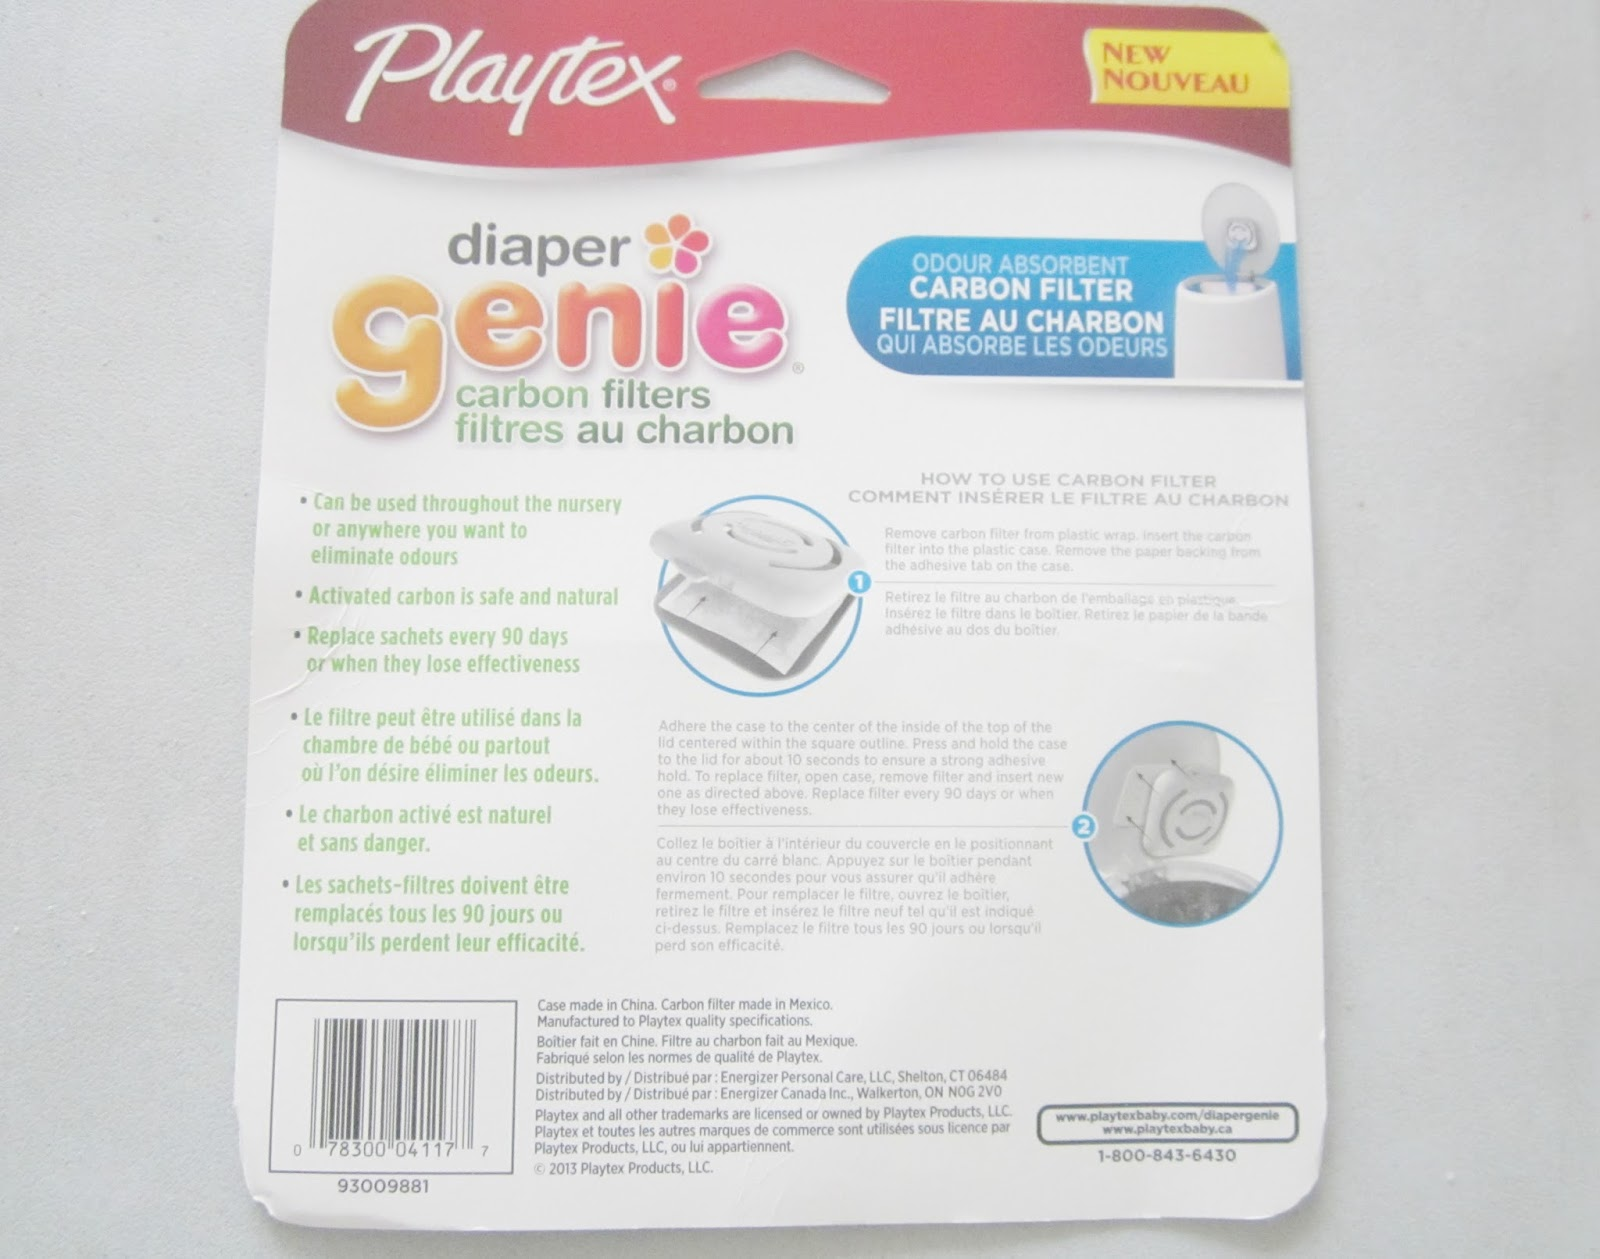 diaper genie carbon filters city of creative dreams rh cityofcreativedreams com Diaper Genie Refills Diaper Genie Refills